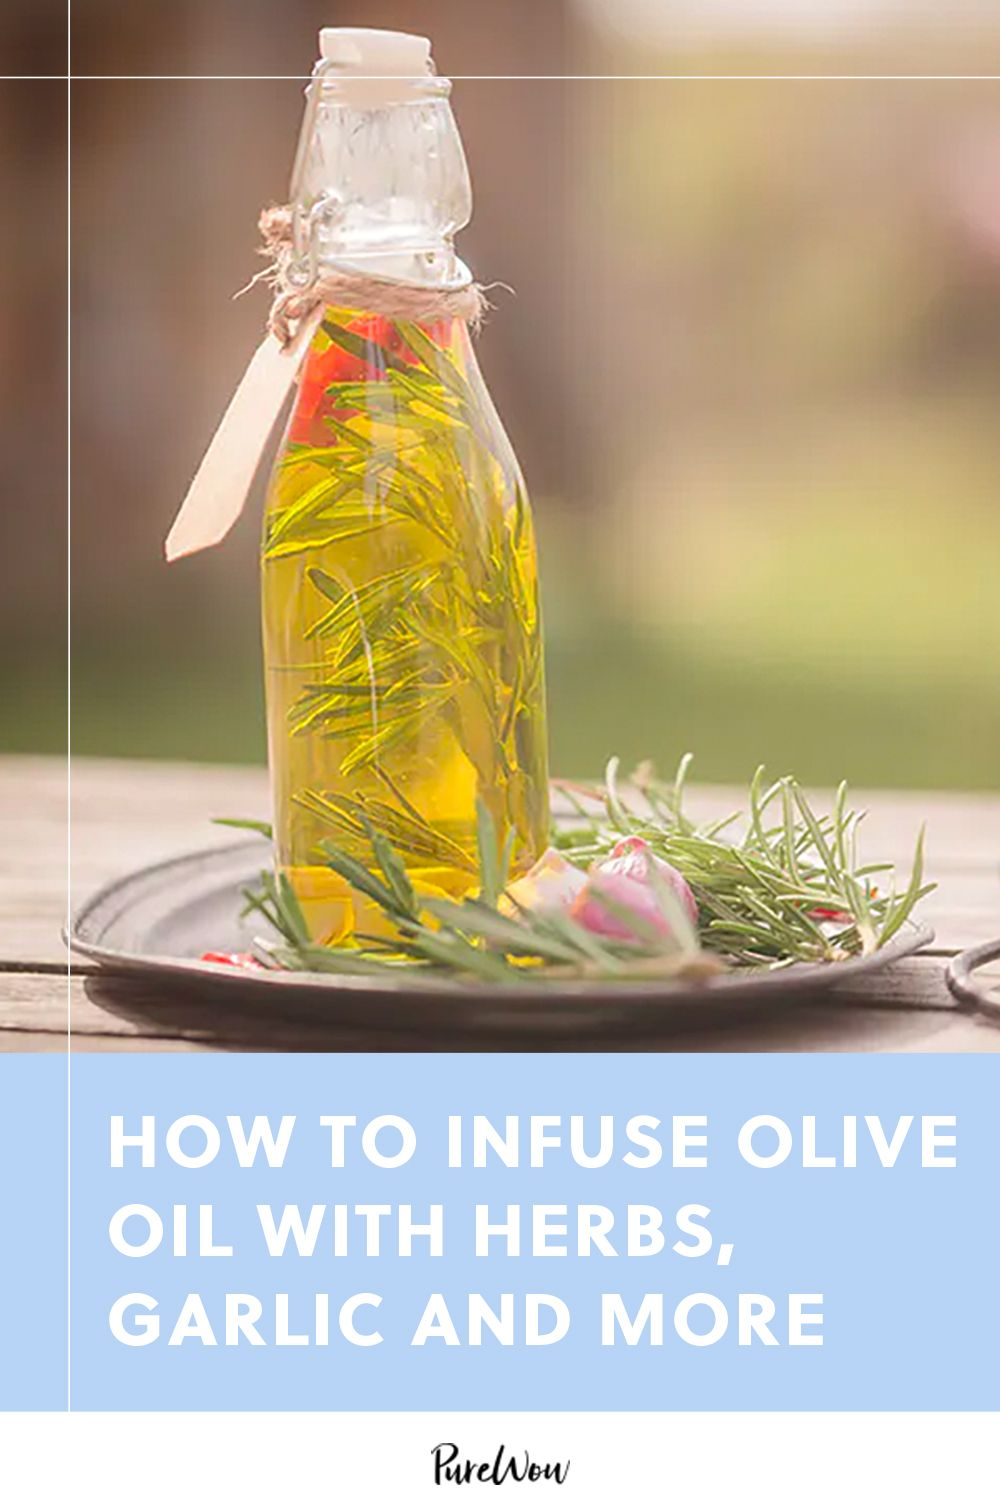 How to Infuse Olive Oil with Herbs, Garlic and Whatever